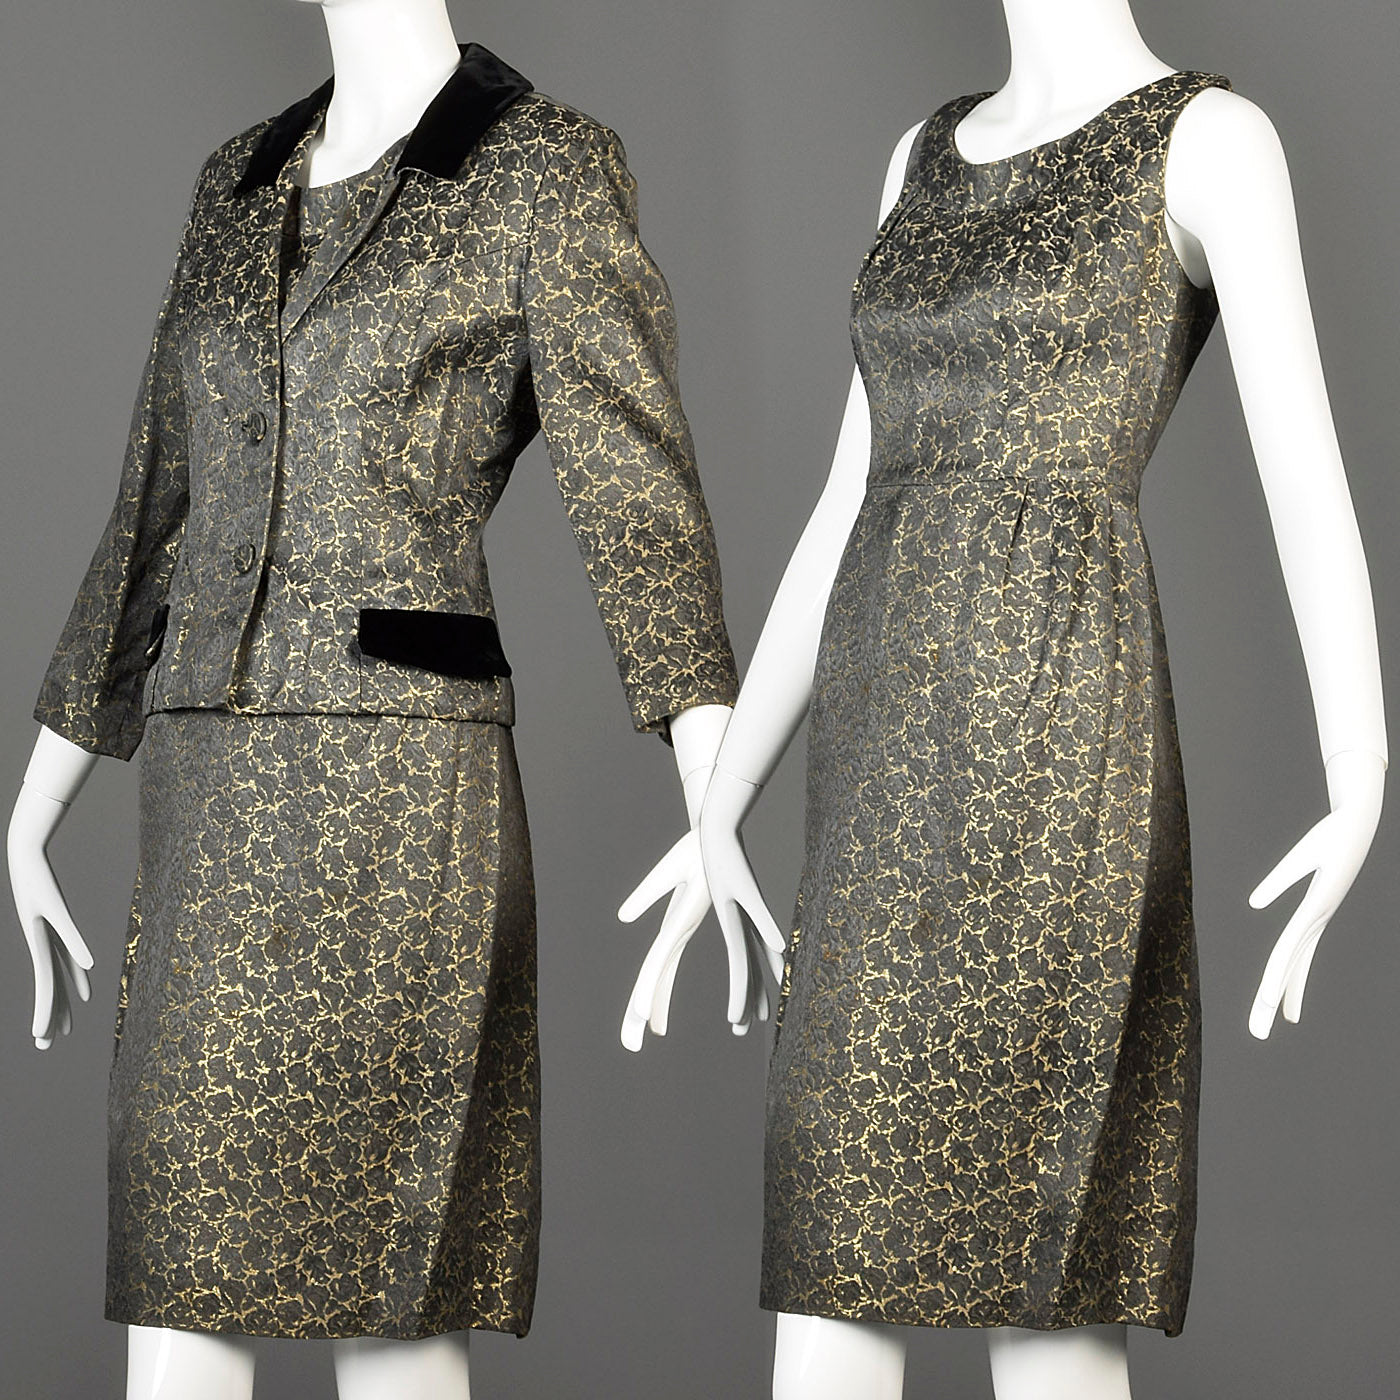 1960s Gold Brocade Dress with Matching Jacket and Velvet Detail